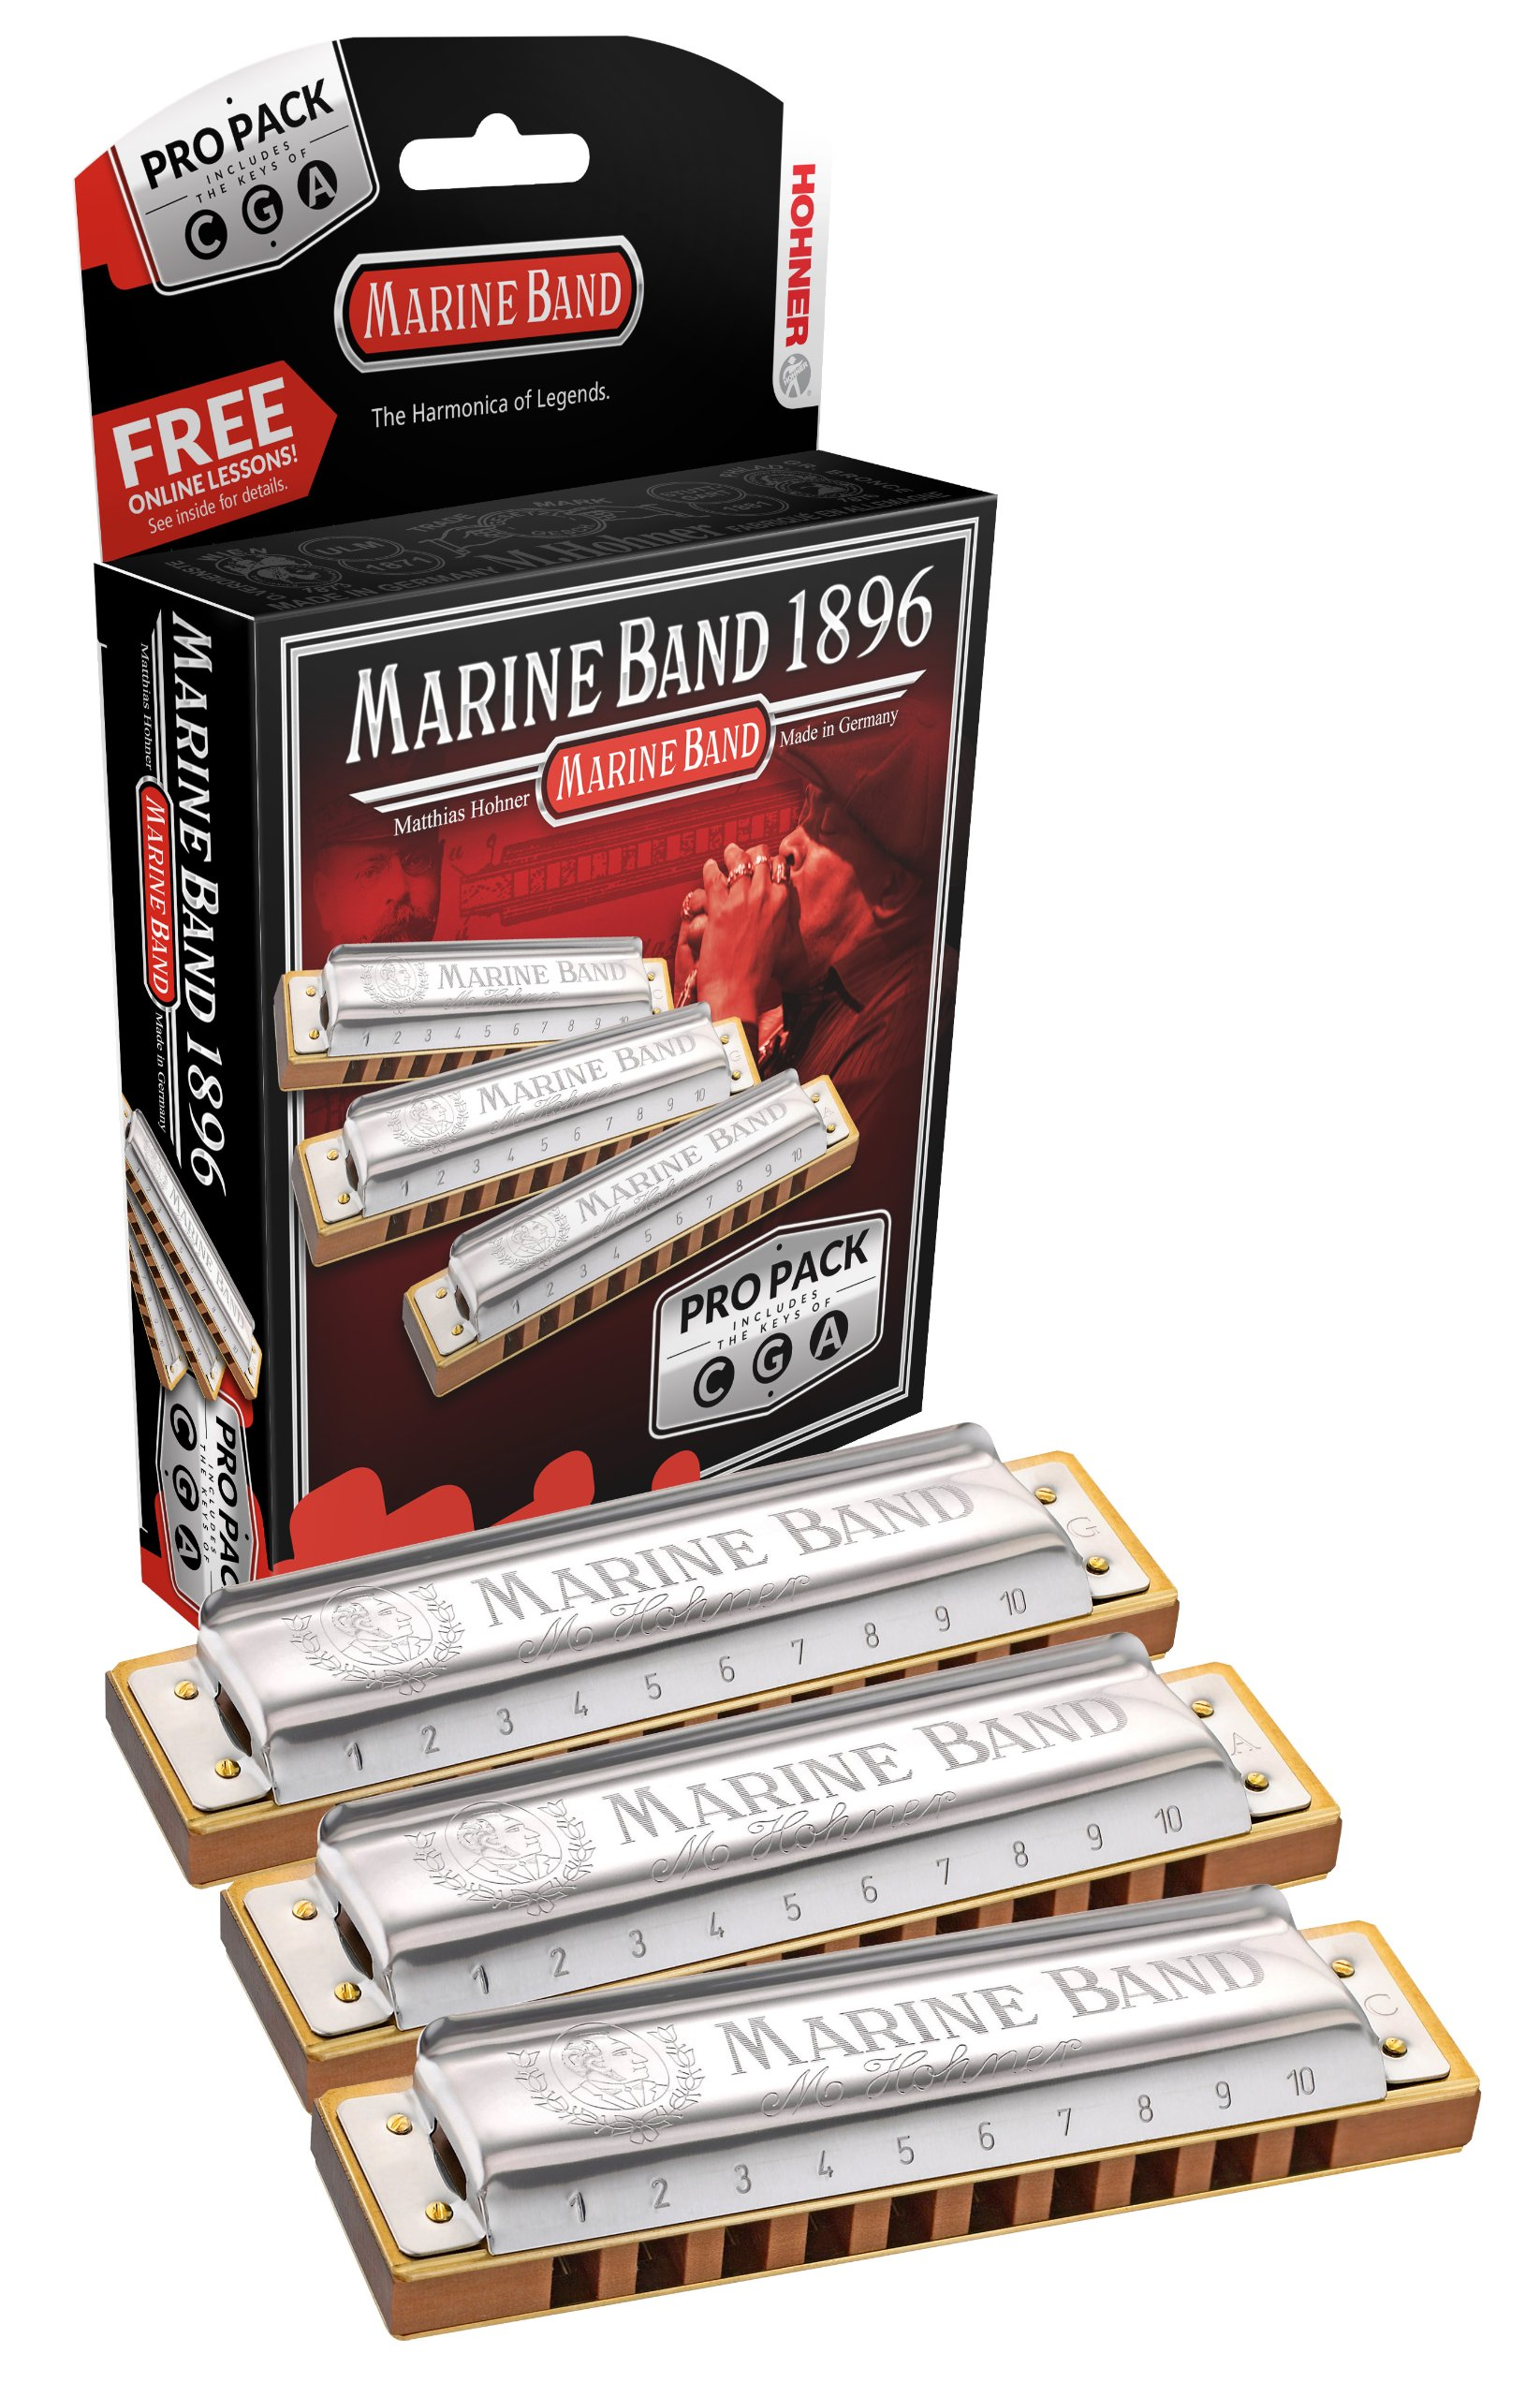 Hohner 3P1896BX Marine Band Harmonica, Pro Pack, Keys of C, G, and A Major by Hohner Accordions